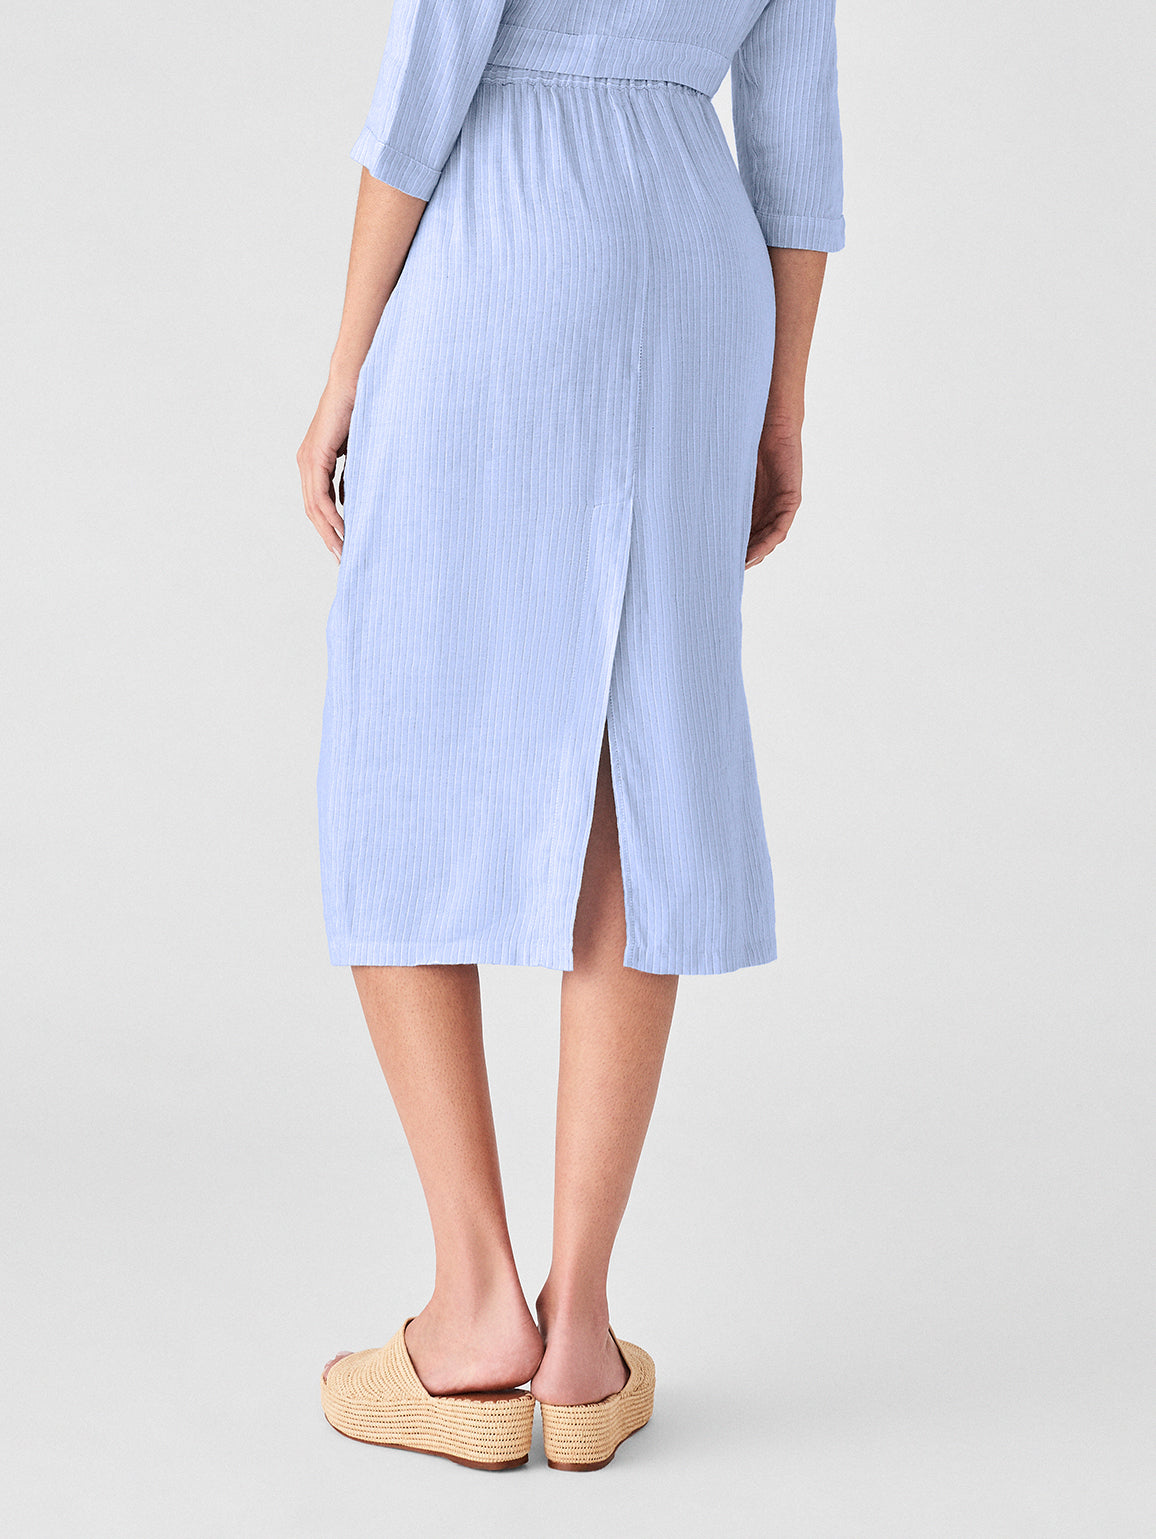 High St Skirt | Blue Stripe